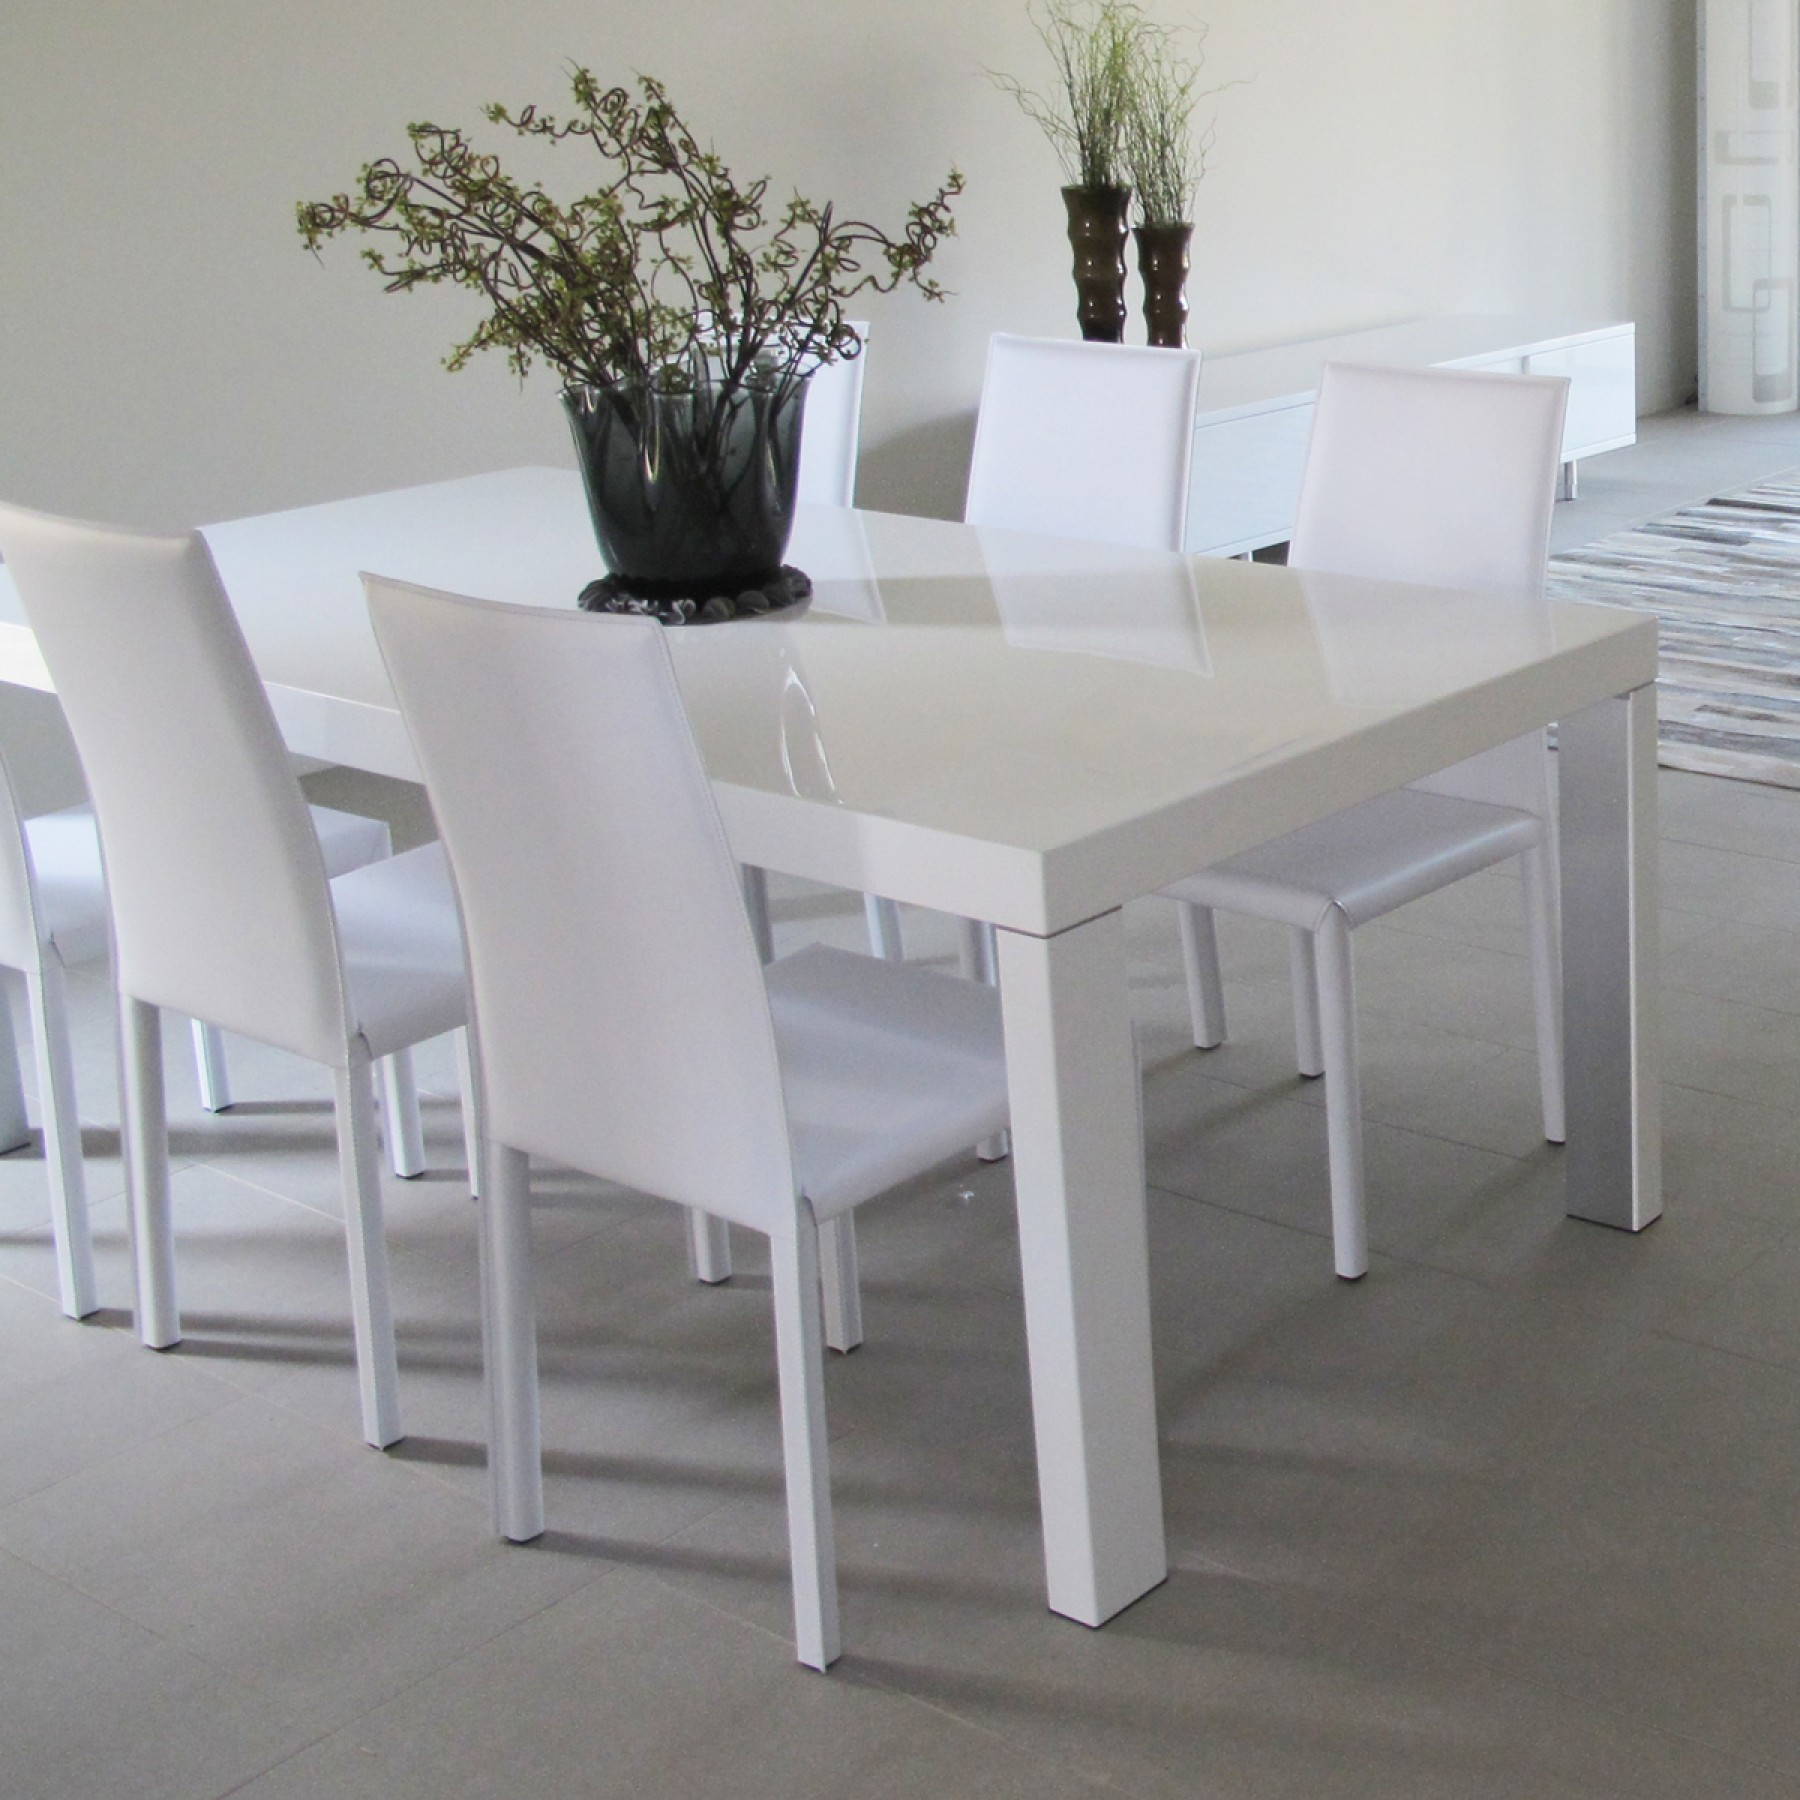 Romina dining chair beyond furniture for Modern dining chairs australia